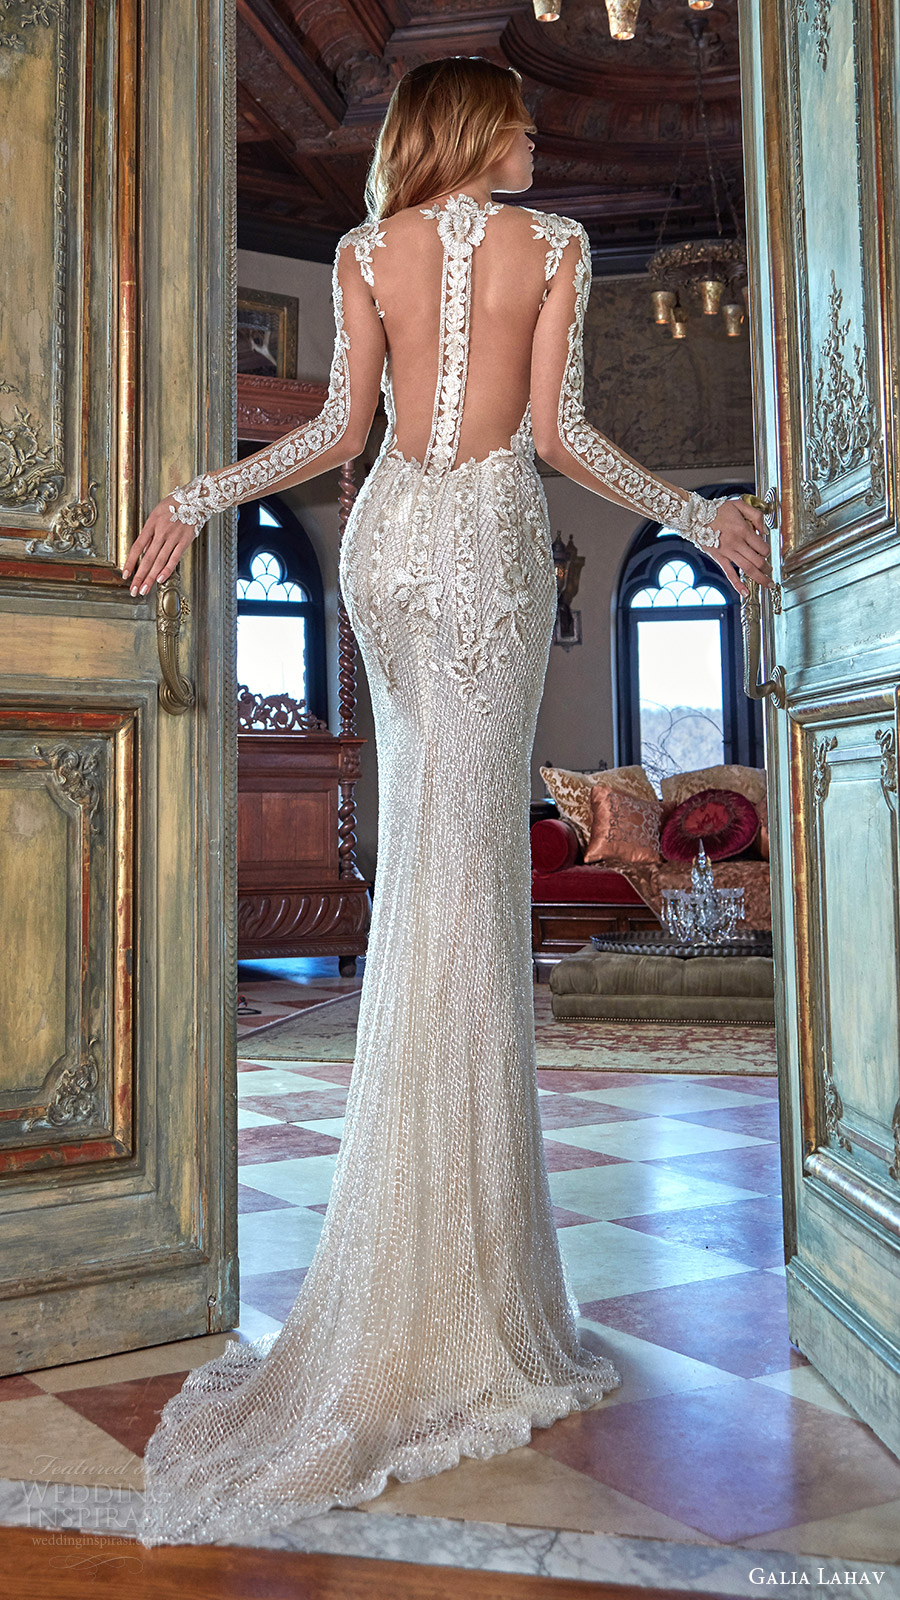 galia lahav bridal spring 2017 illusion long sleeves deep vneck beaded sheath wedding dress (bella) bv illusion back point train